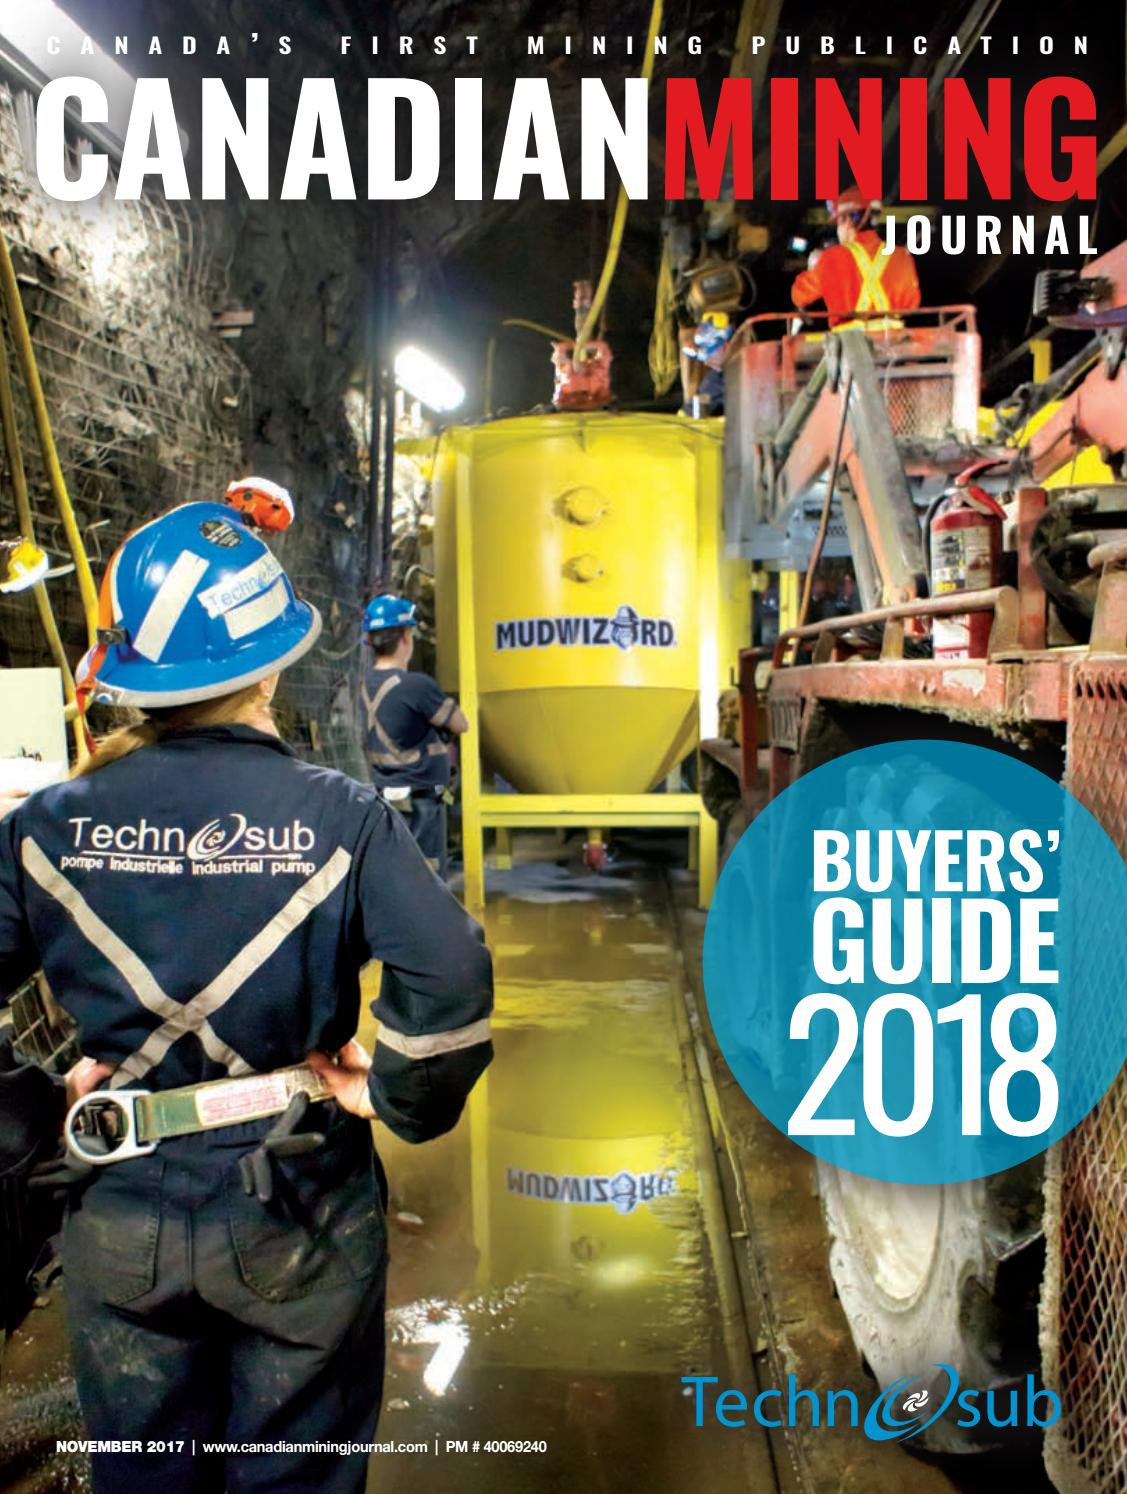 Canadian Mining Journal November 2017 By The Northern Miner Group Lithium Ion 8211 Polymer Usb Battery Charger Max1811 Issuu